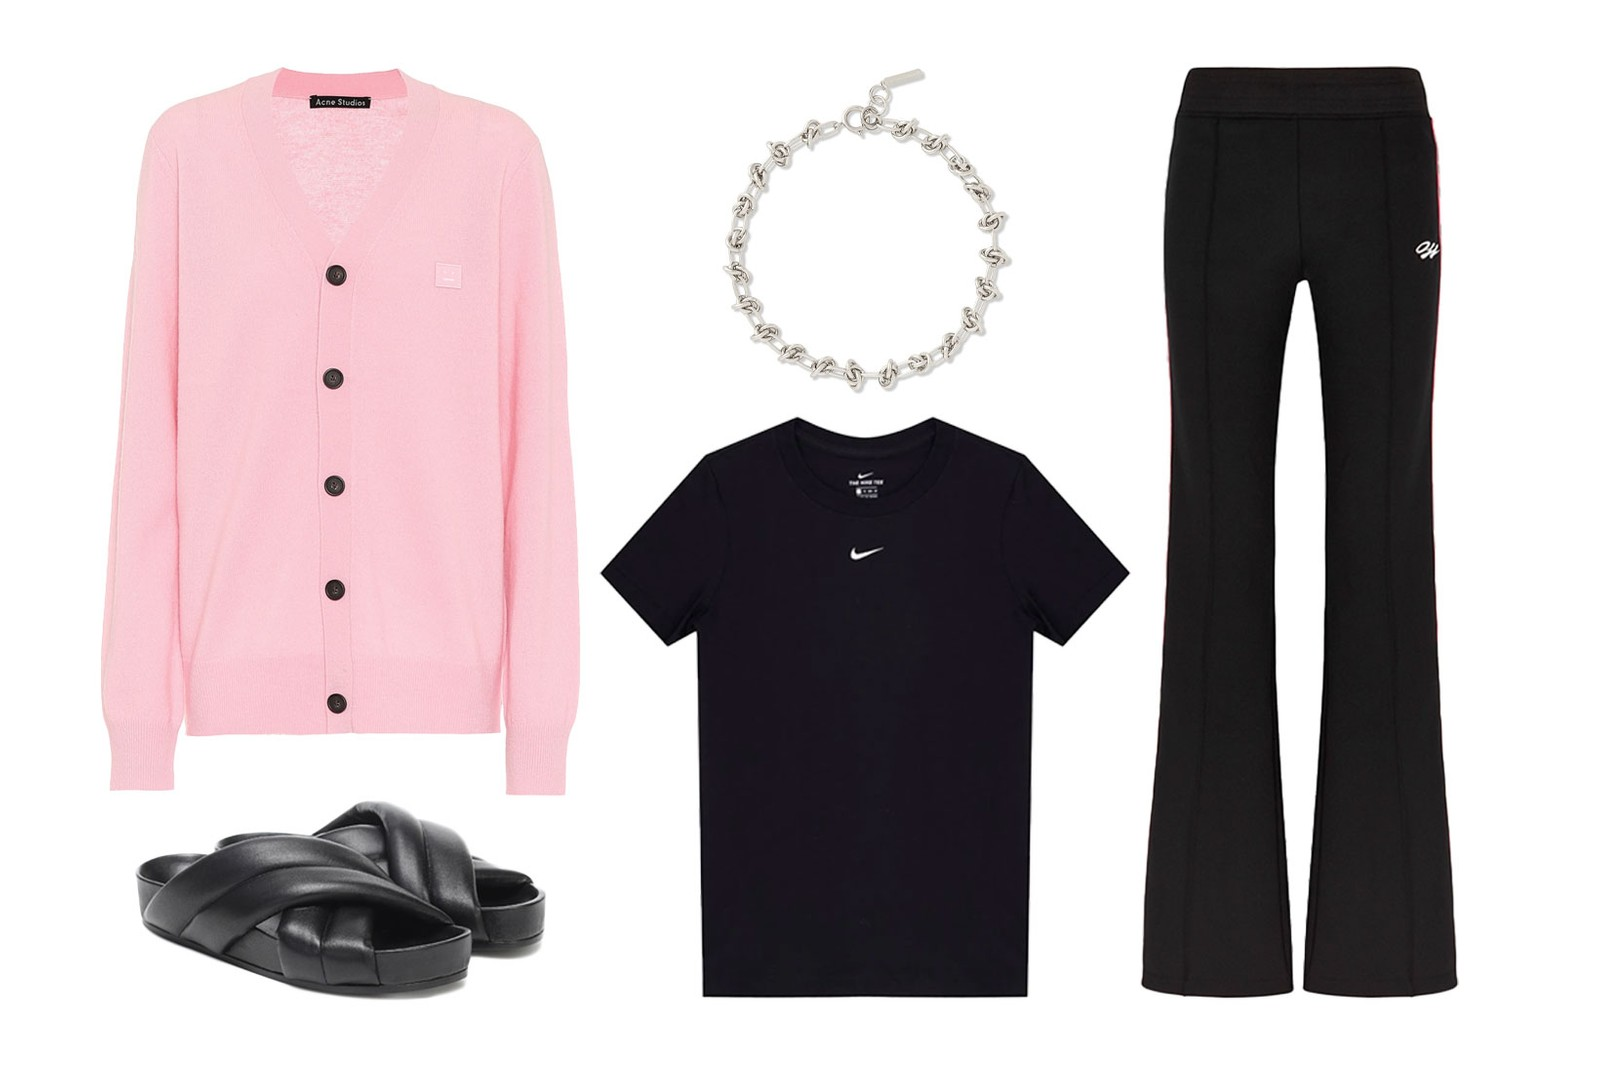 black outfits how to wear styling guide acne studios pink face knitwear cardigan jil sander slippers slides nike swoosh tshirt justine clenquet chain necklace choker off-white flared pants